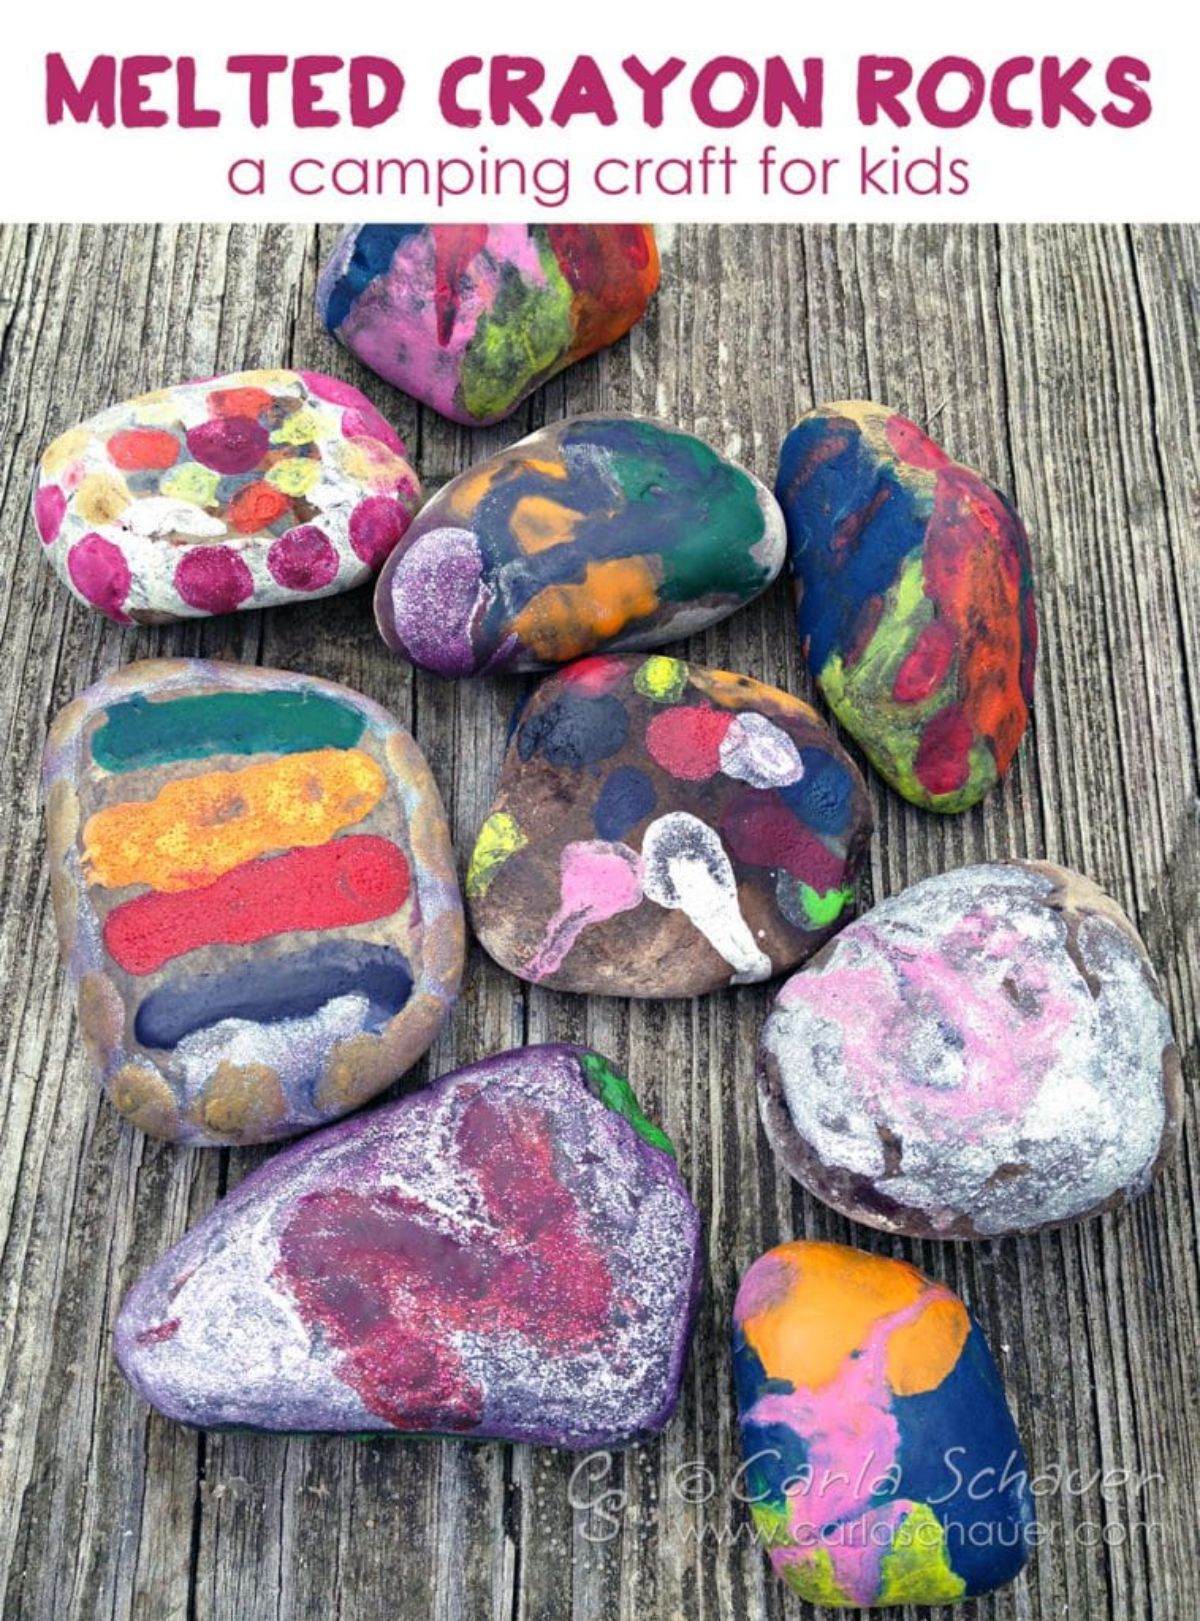 """The text reads """"Melted Crayon Rocks a camping craft for kids"""" The image is of 9 rocks painted with melted crayon"""